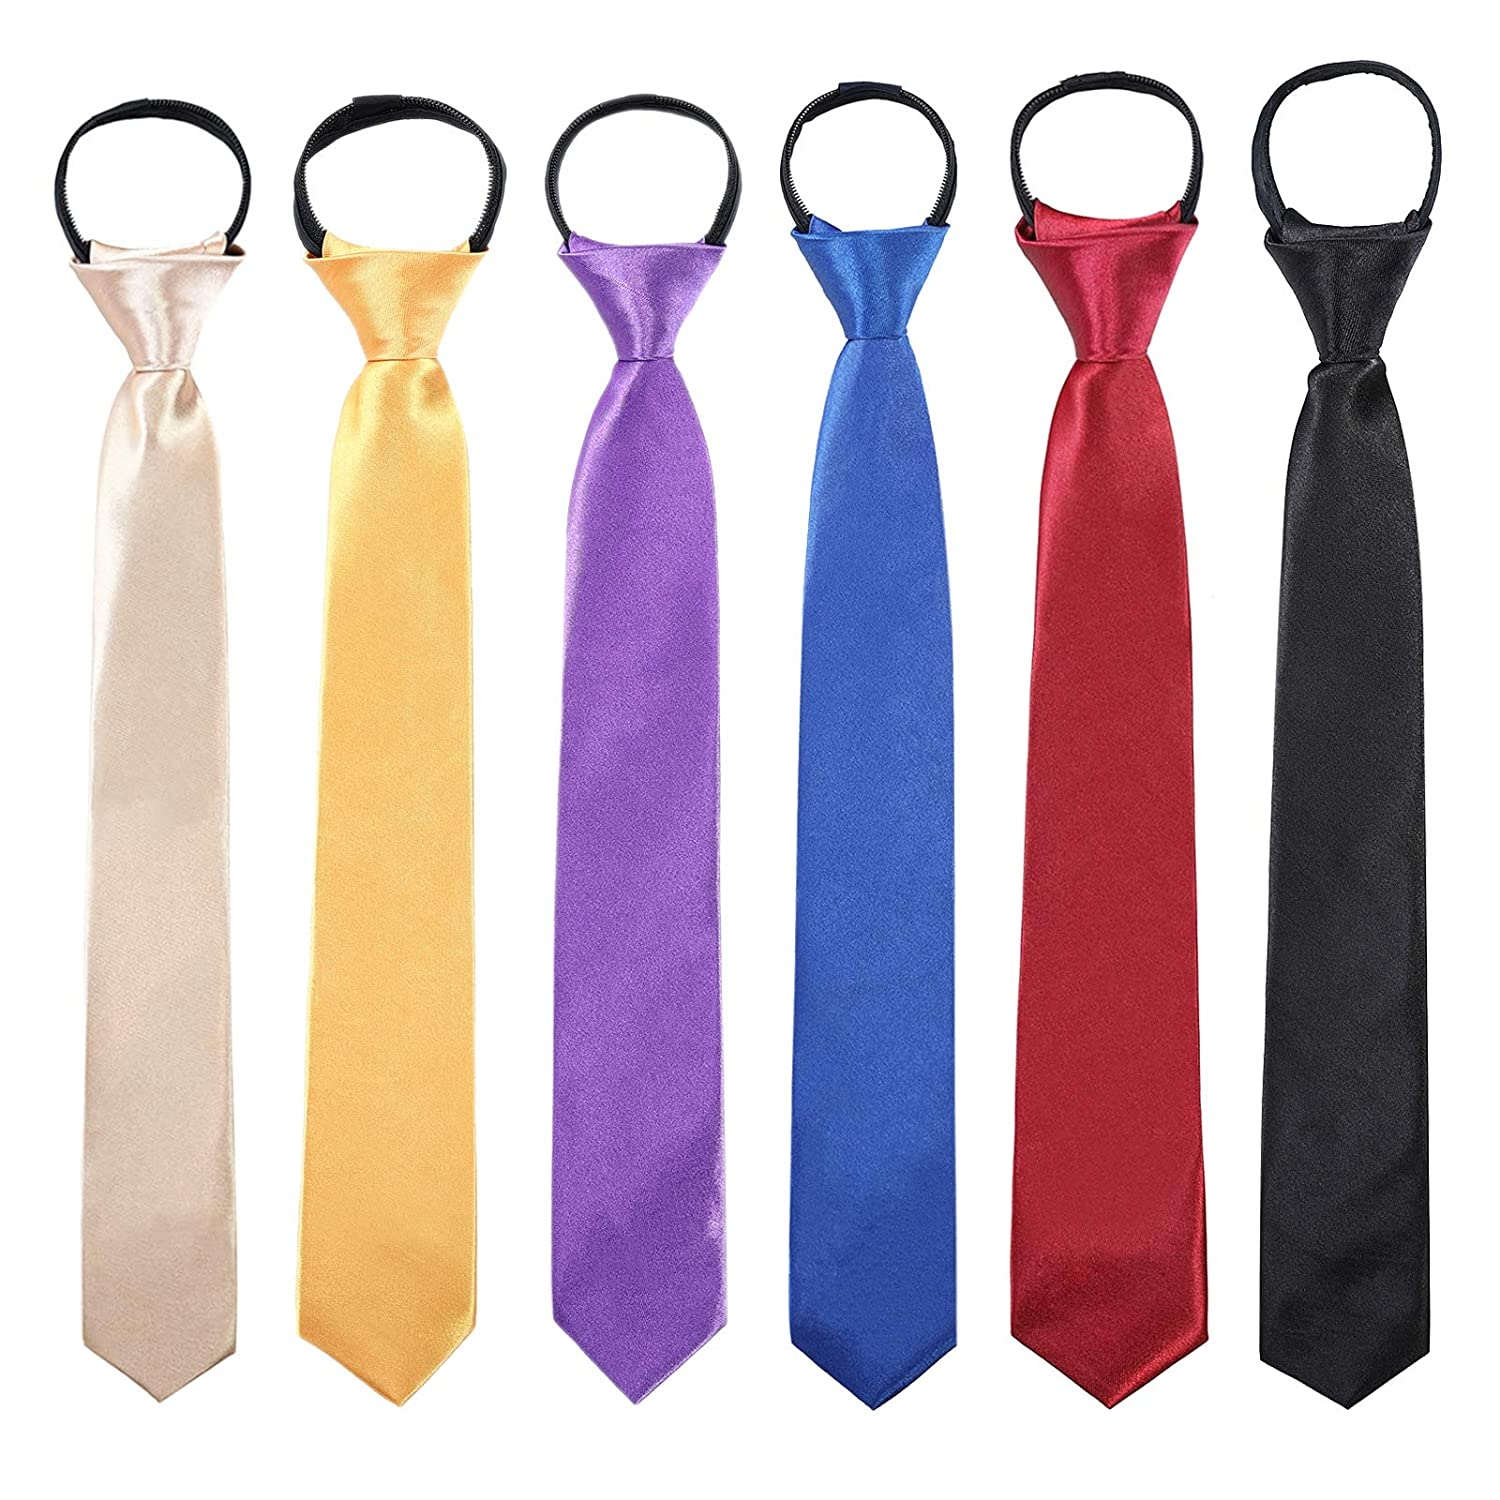 6PCS Solid Color Adjustable Tie for Party Champagne,Gold Yellow,Purple,Royal Blue,Wine Red,Black Toddlers Boys Zipper Ties Necktie